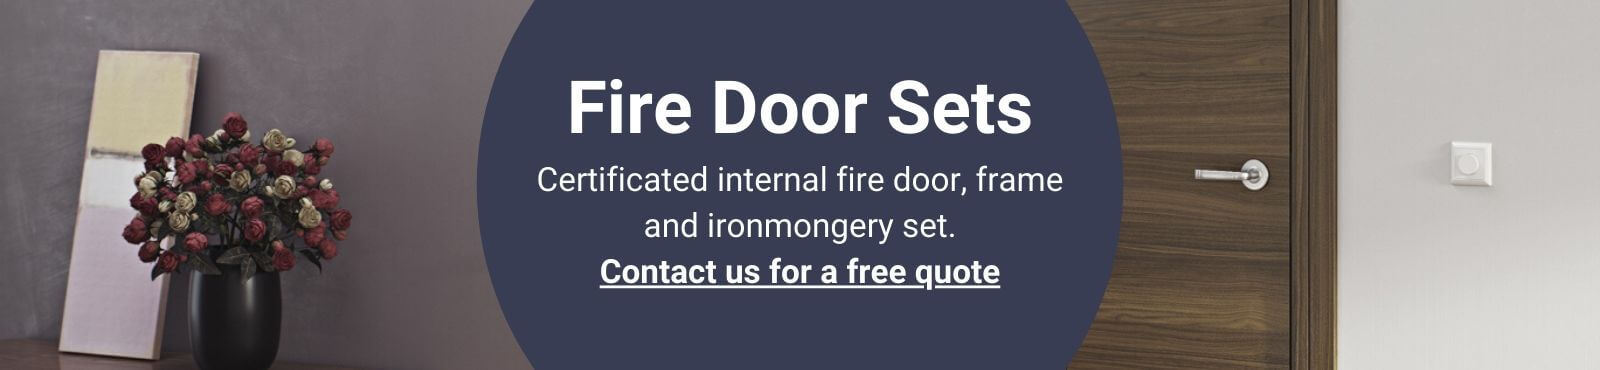 fire door sets